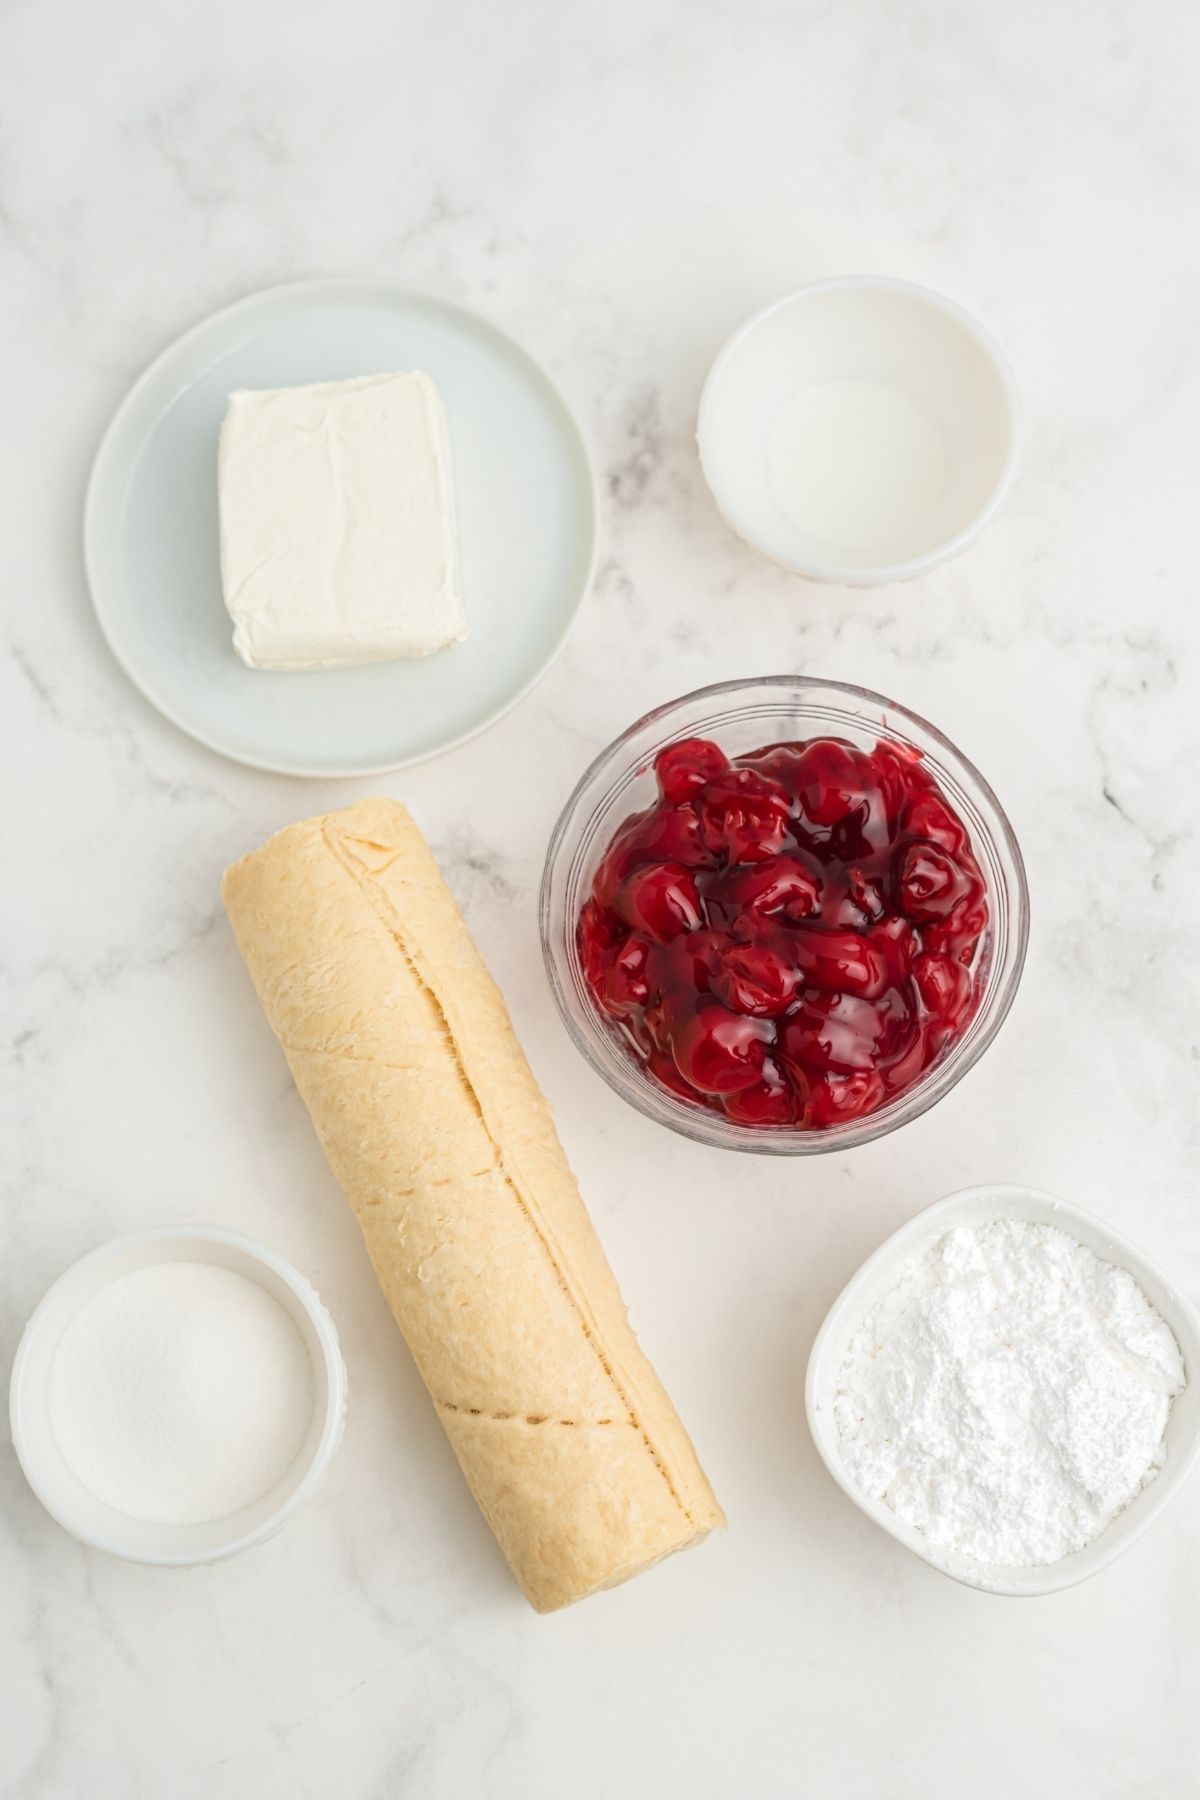 ingredients on white marble counter: block of cream cheese, milk, cherry pie filling, powdered sugar, rolled crescent roll dough, sugar